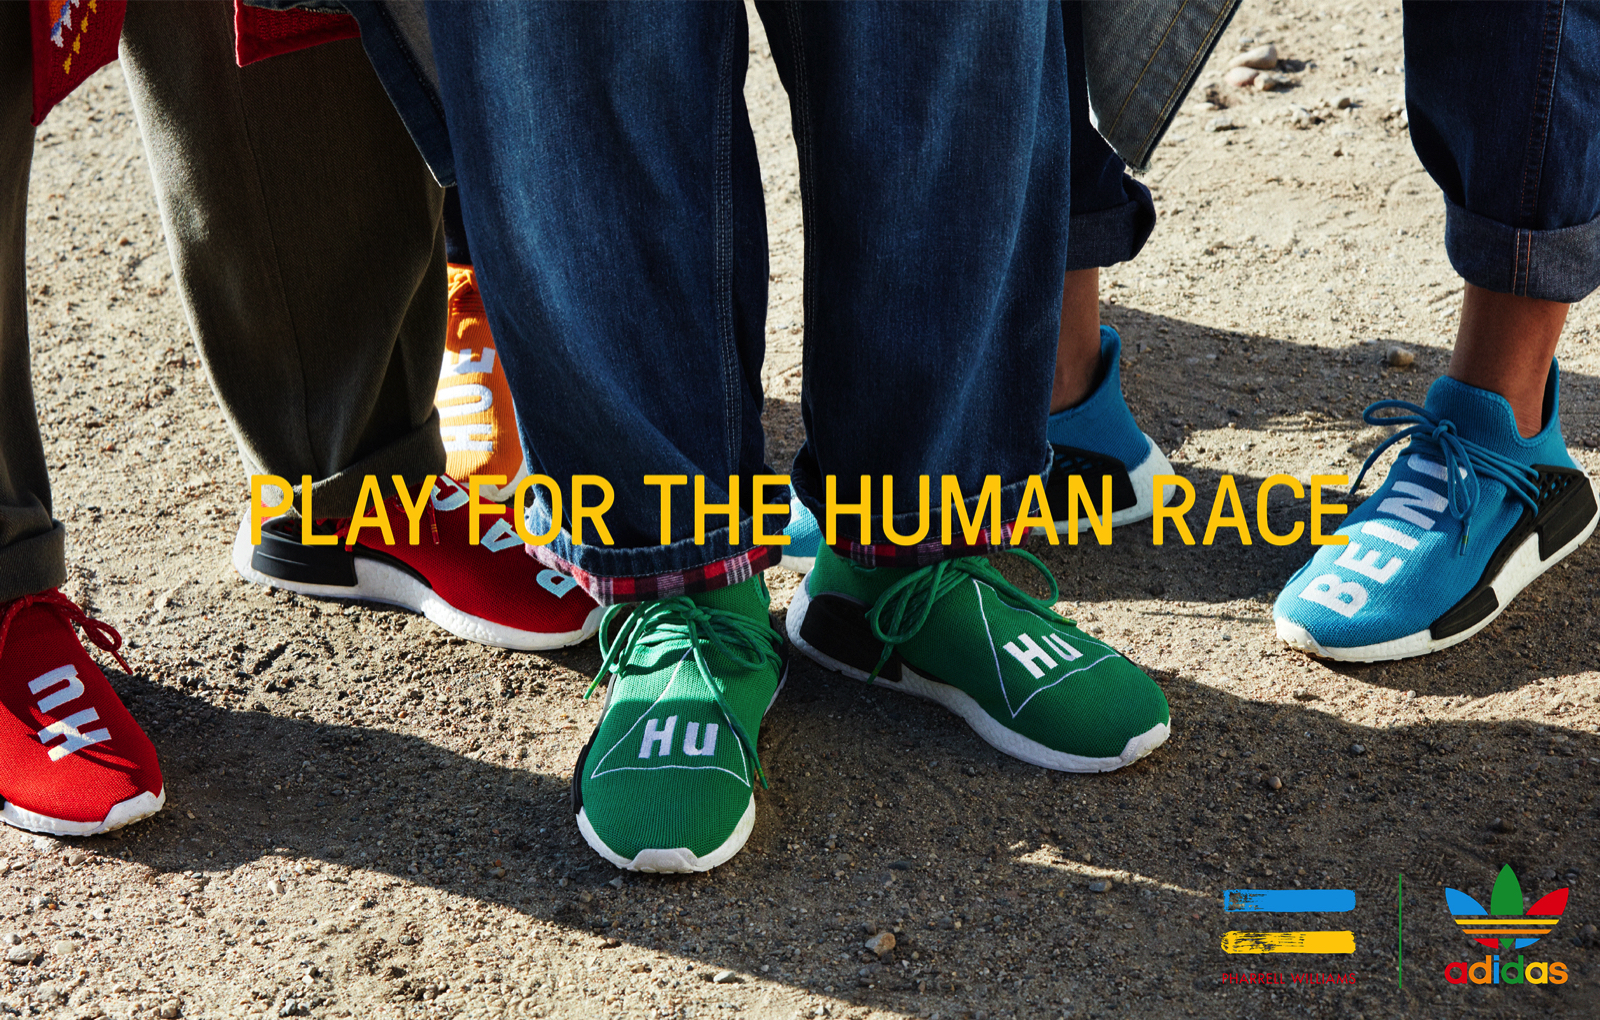 147908_or_pharrell_wiliams_humen_race_pr_full_bleed_layout7